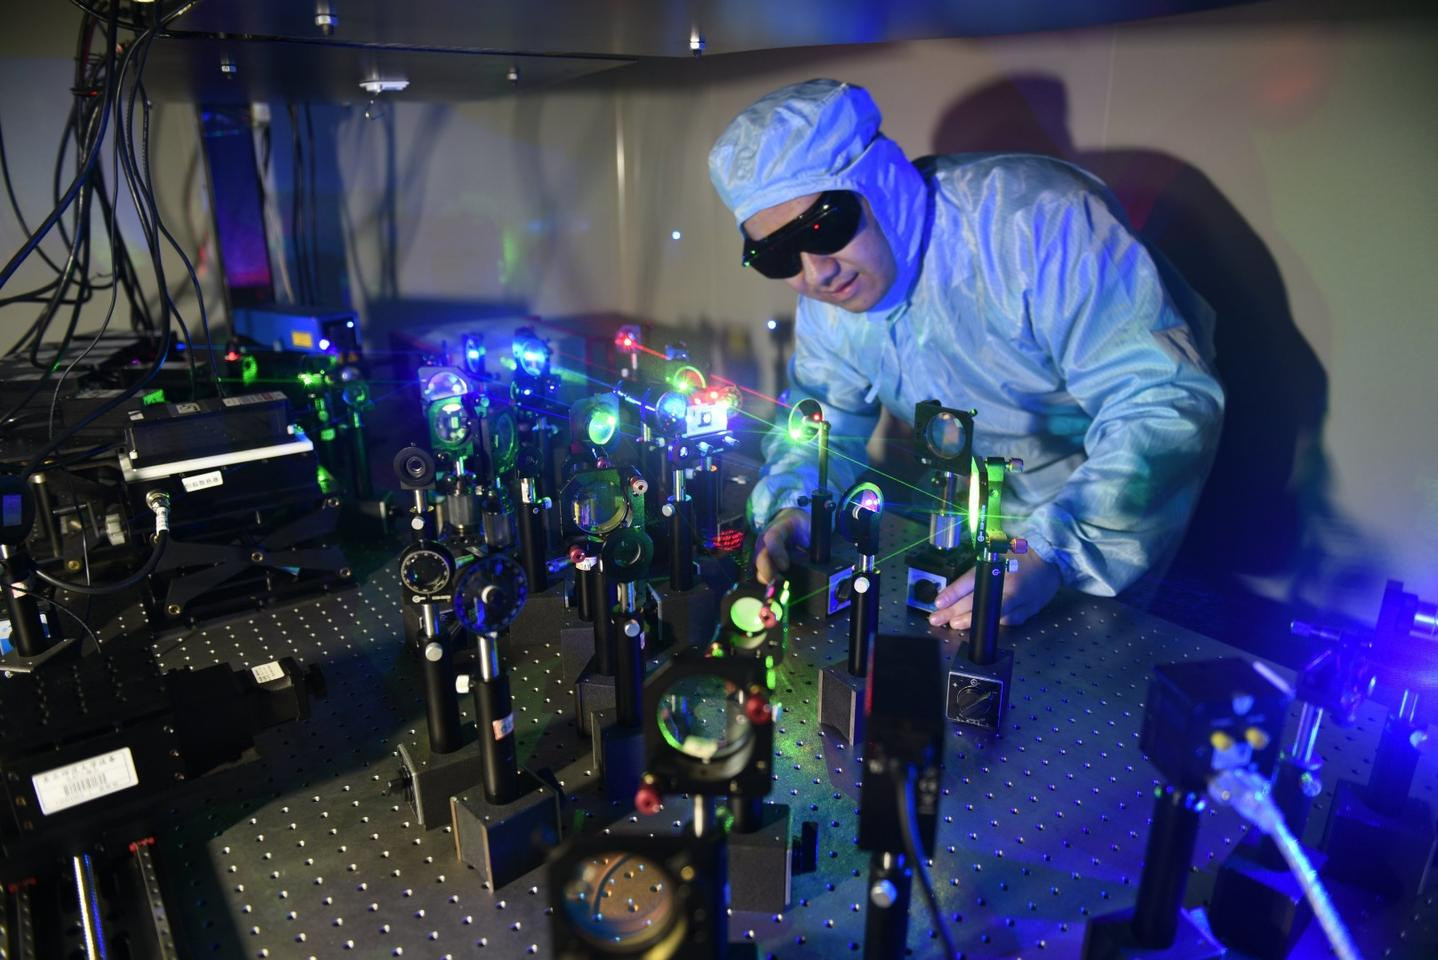 Lead researcher Shencheng Fu conducts experiments on a new film that can store data as 3D holograms